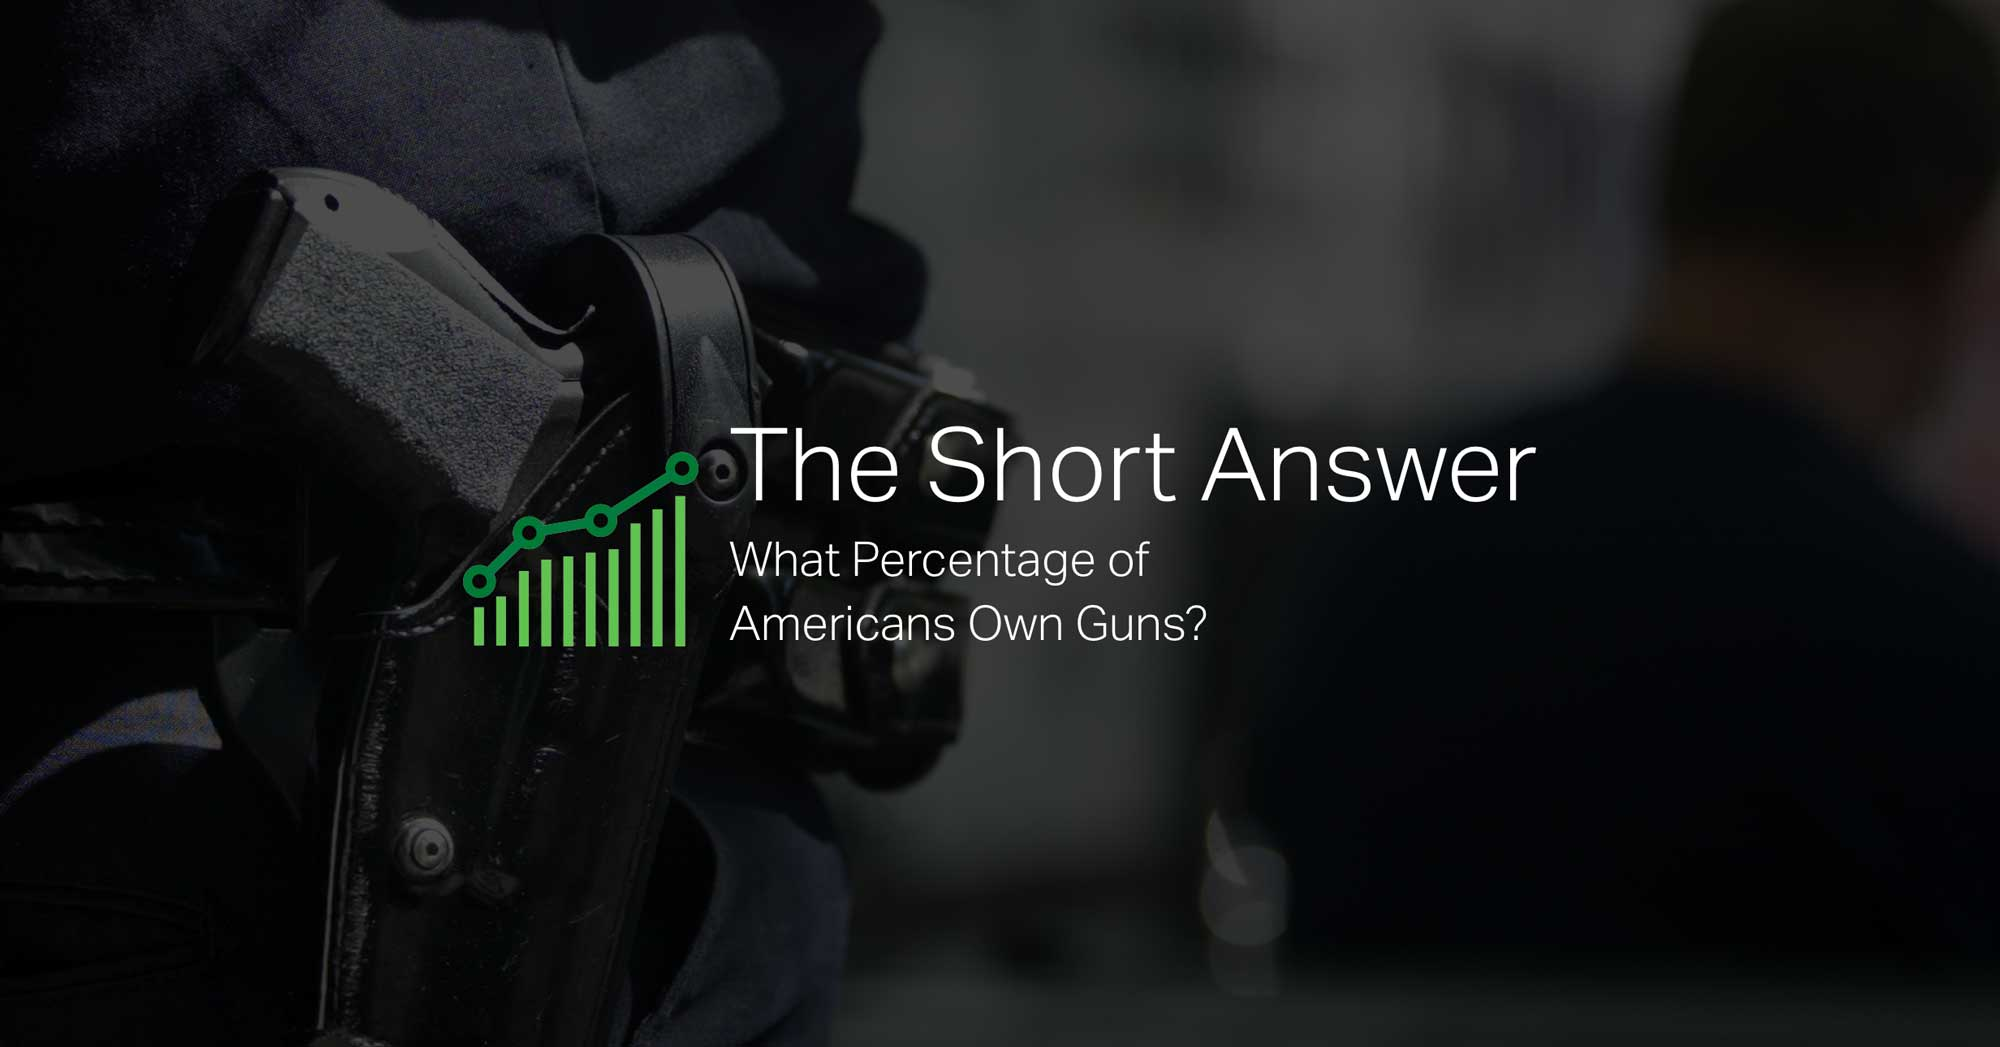 What Percentage of Americans Own Guns?